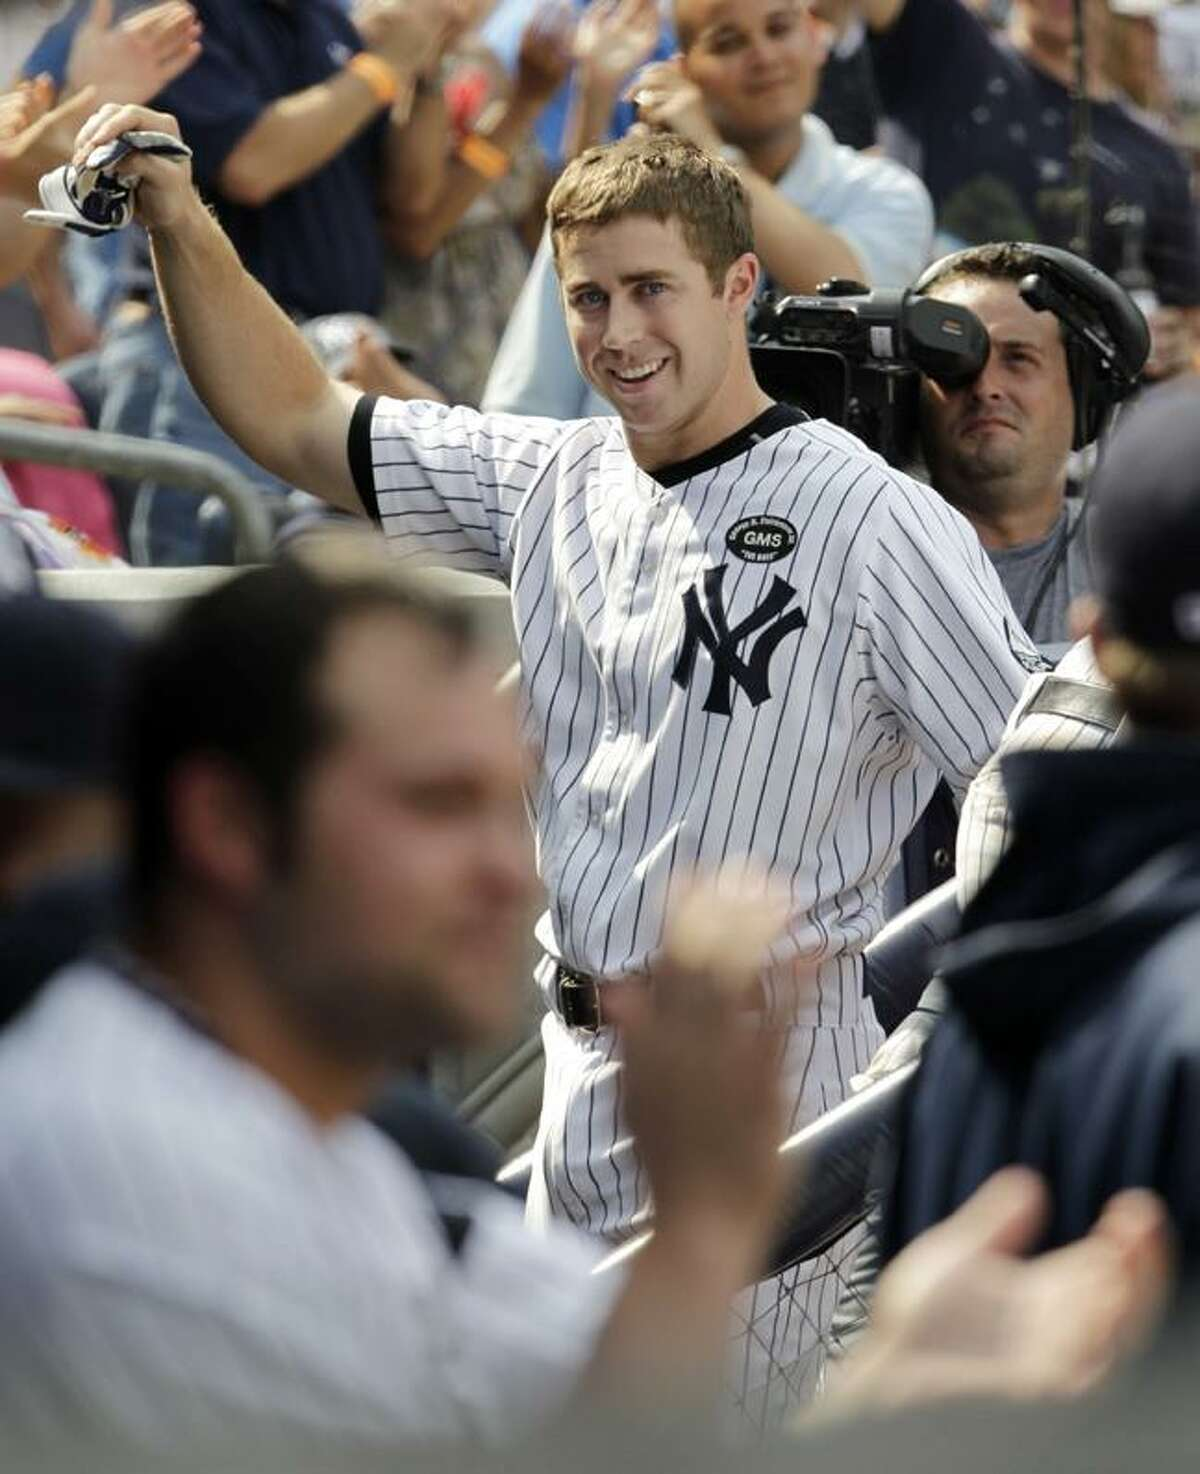 New York Yankees Colin Curtis (27) acknowledges the crowd with a curtain call after hitting a a three-run home run during the seventh inning of a baseball game against the Los Angeles Angels at Yankee Stadium on Wednesday in New York. The hit was Curtis' first career home run in the big leagues. (AP Photo/Kathy Willens)